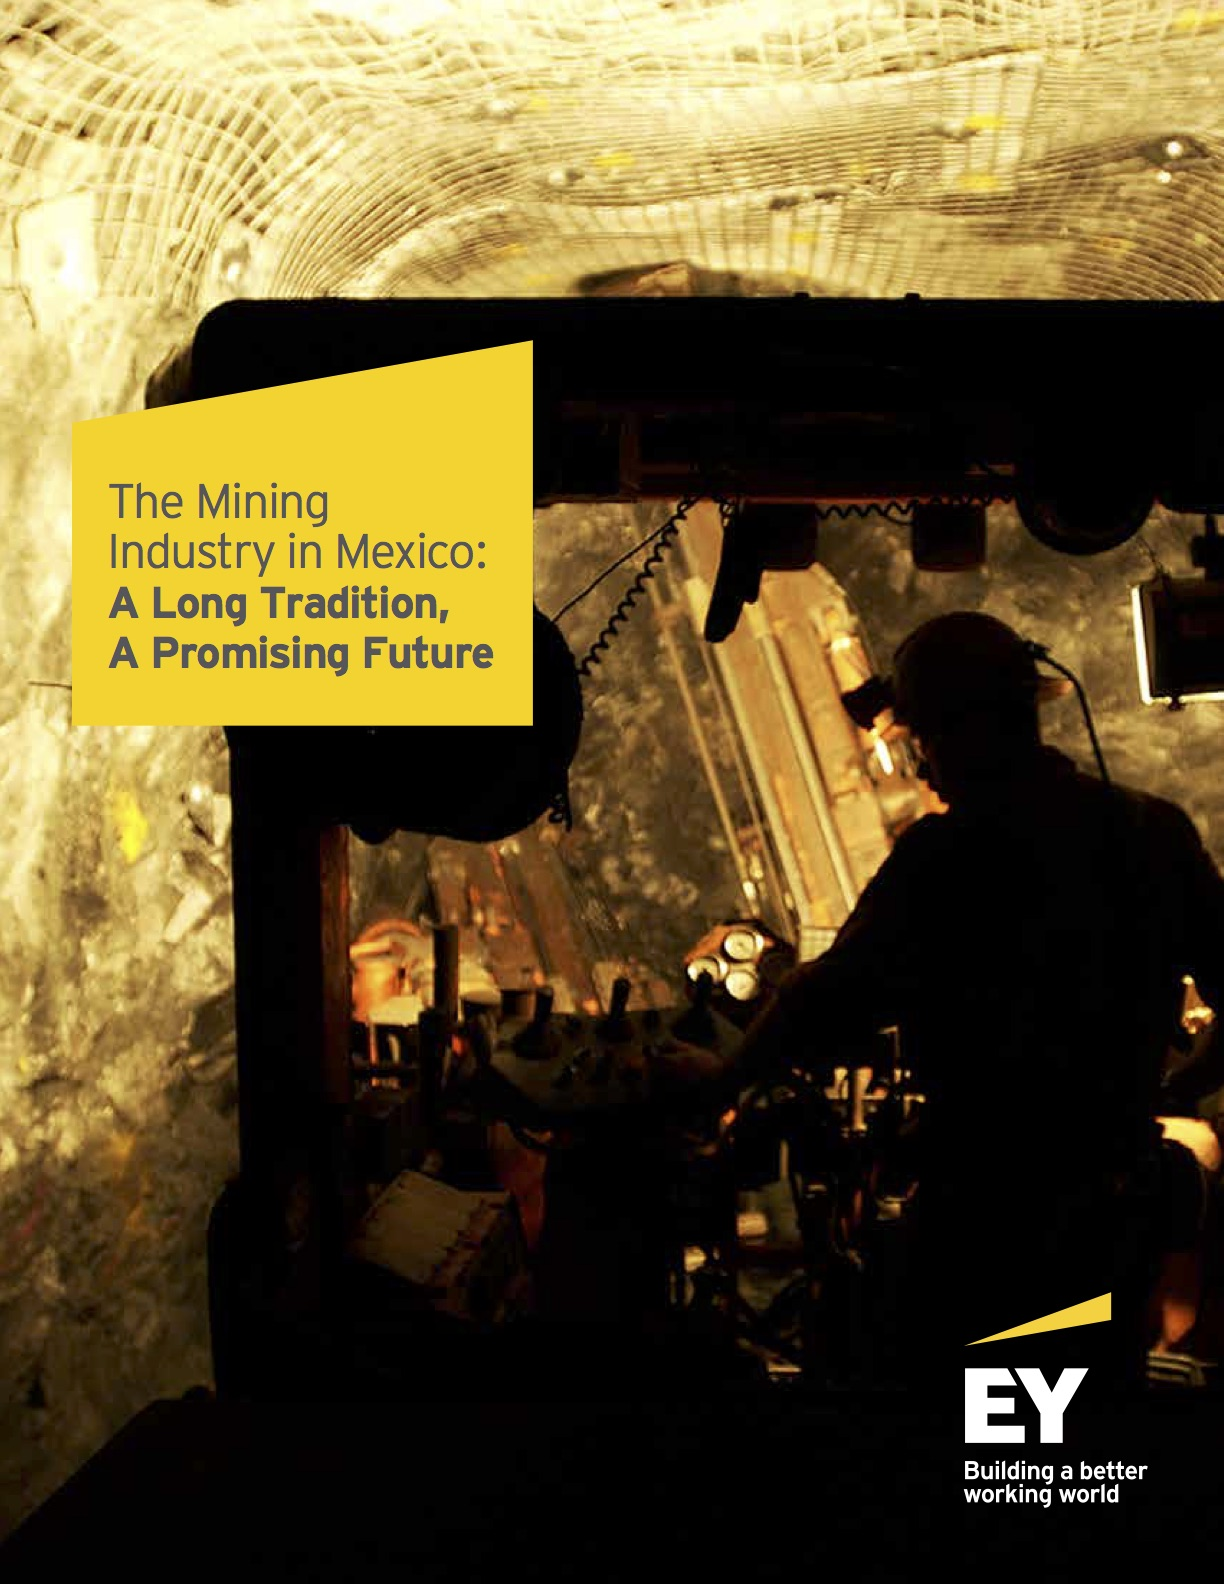 ey-the-mining-industry-in-mexico-01.jpg